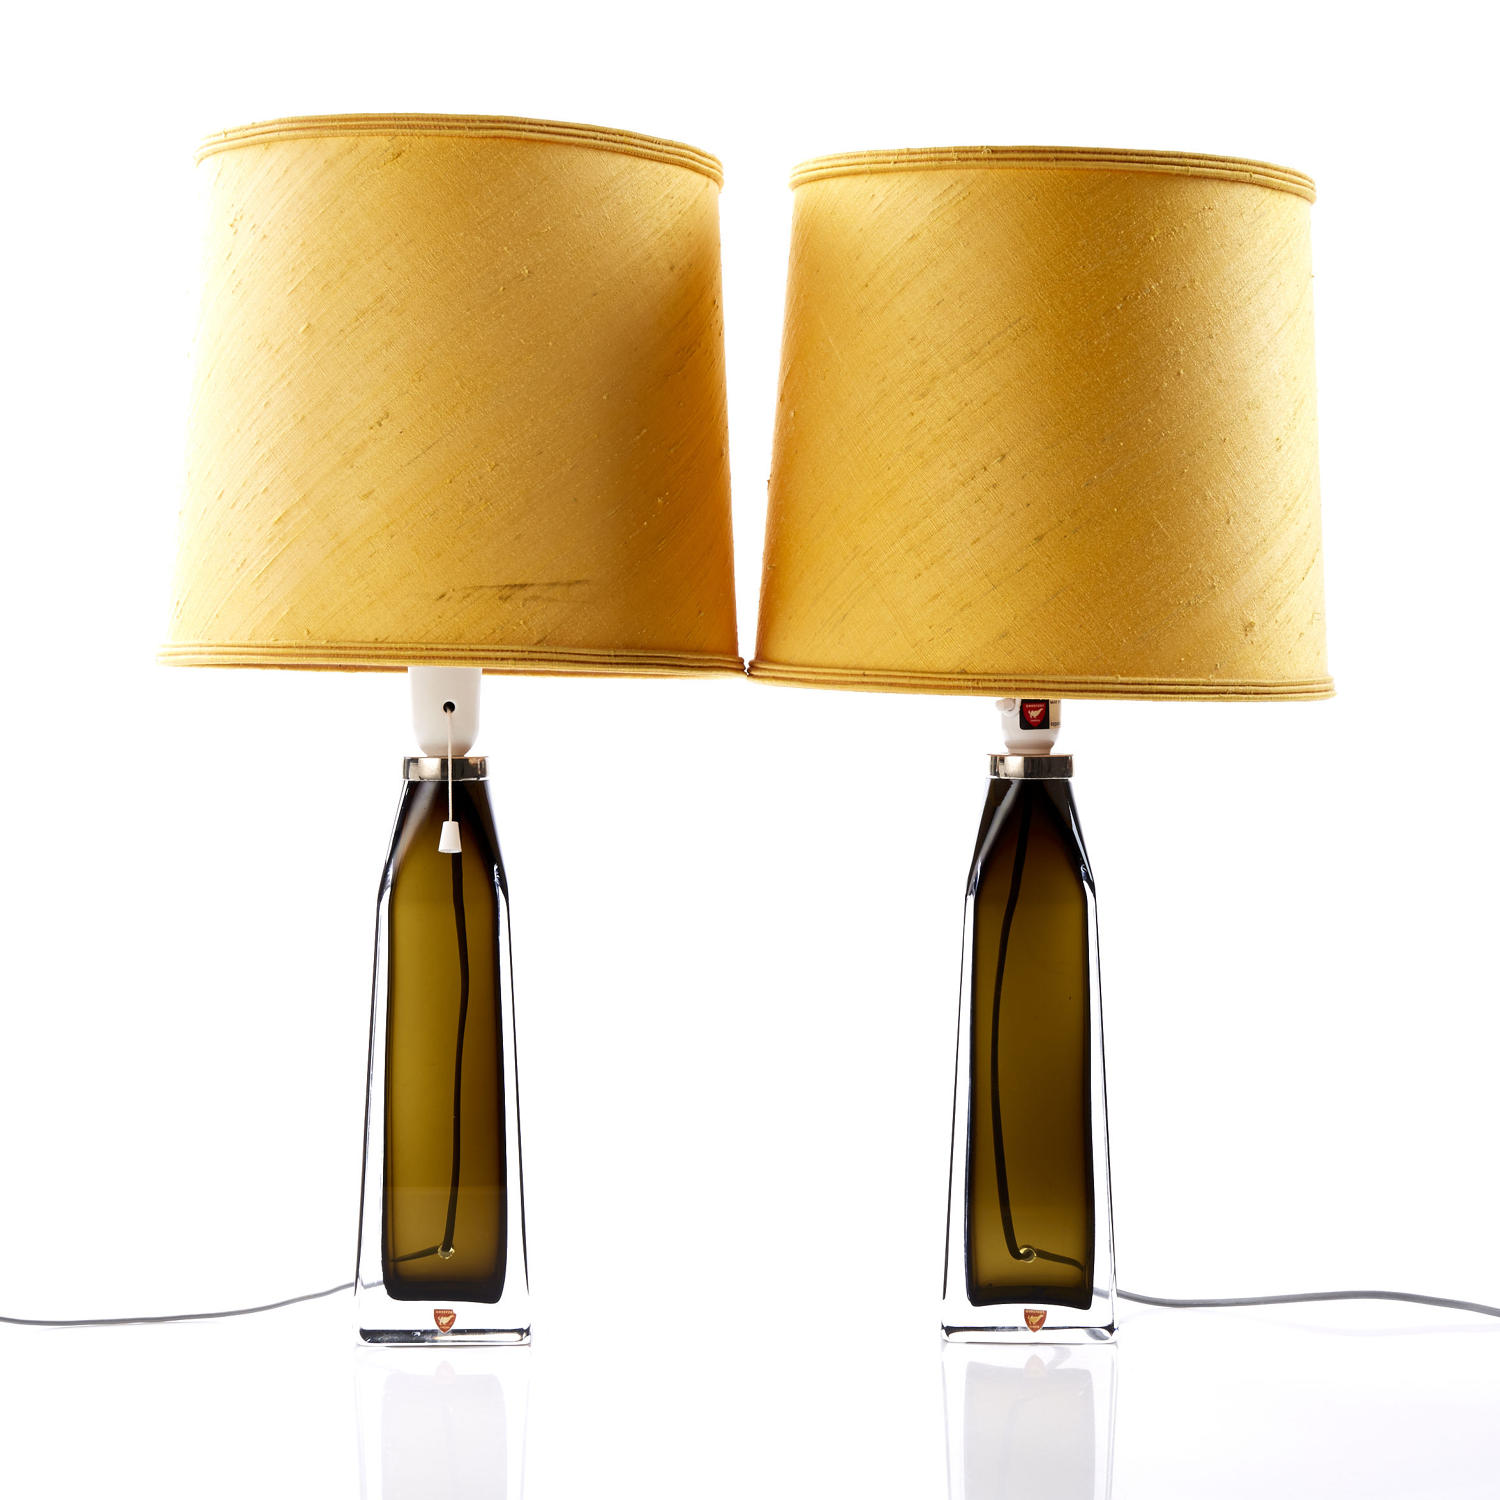 A pair of table lamps by CARL FAGERLUND for Orrefors